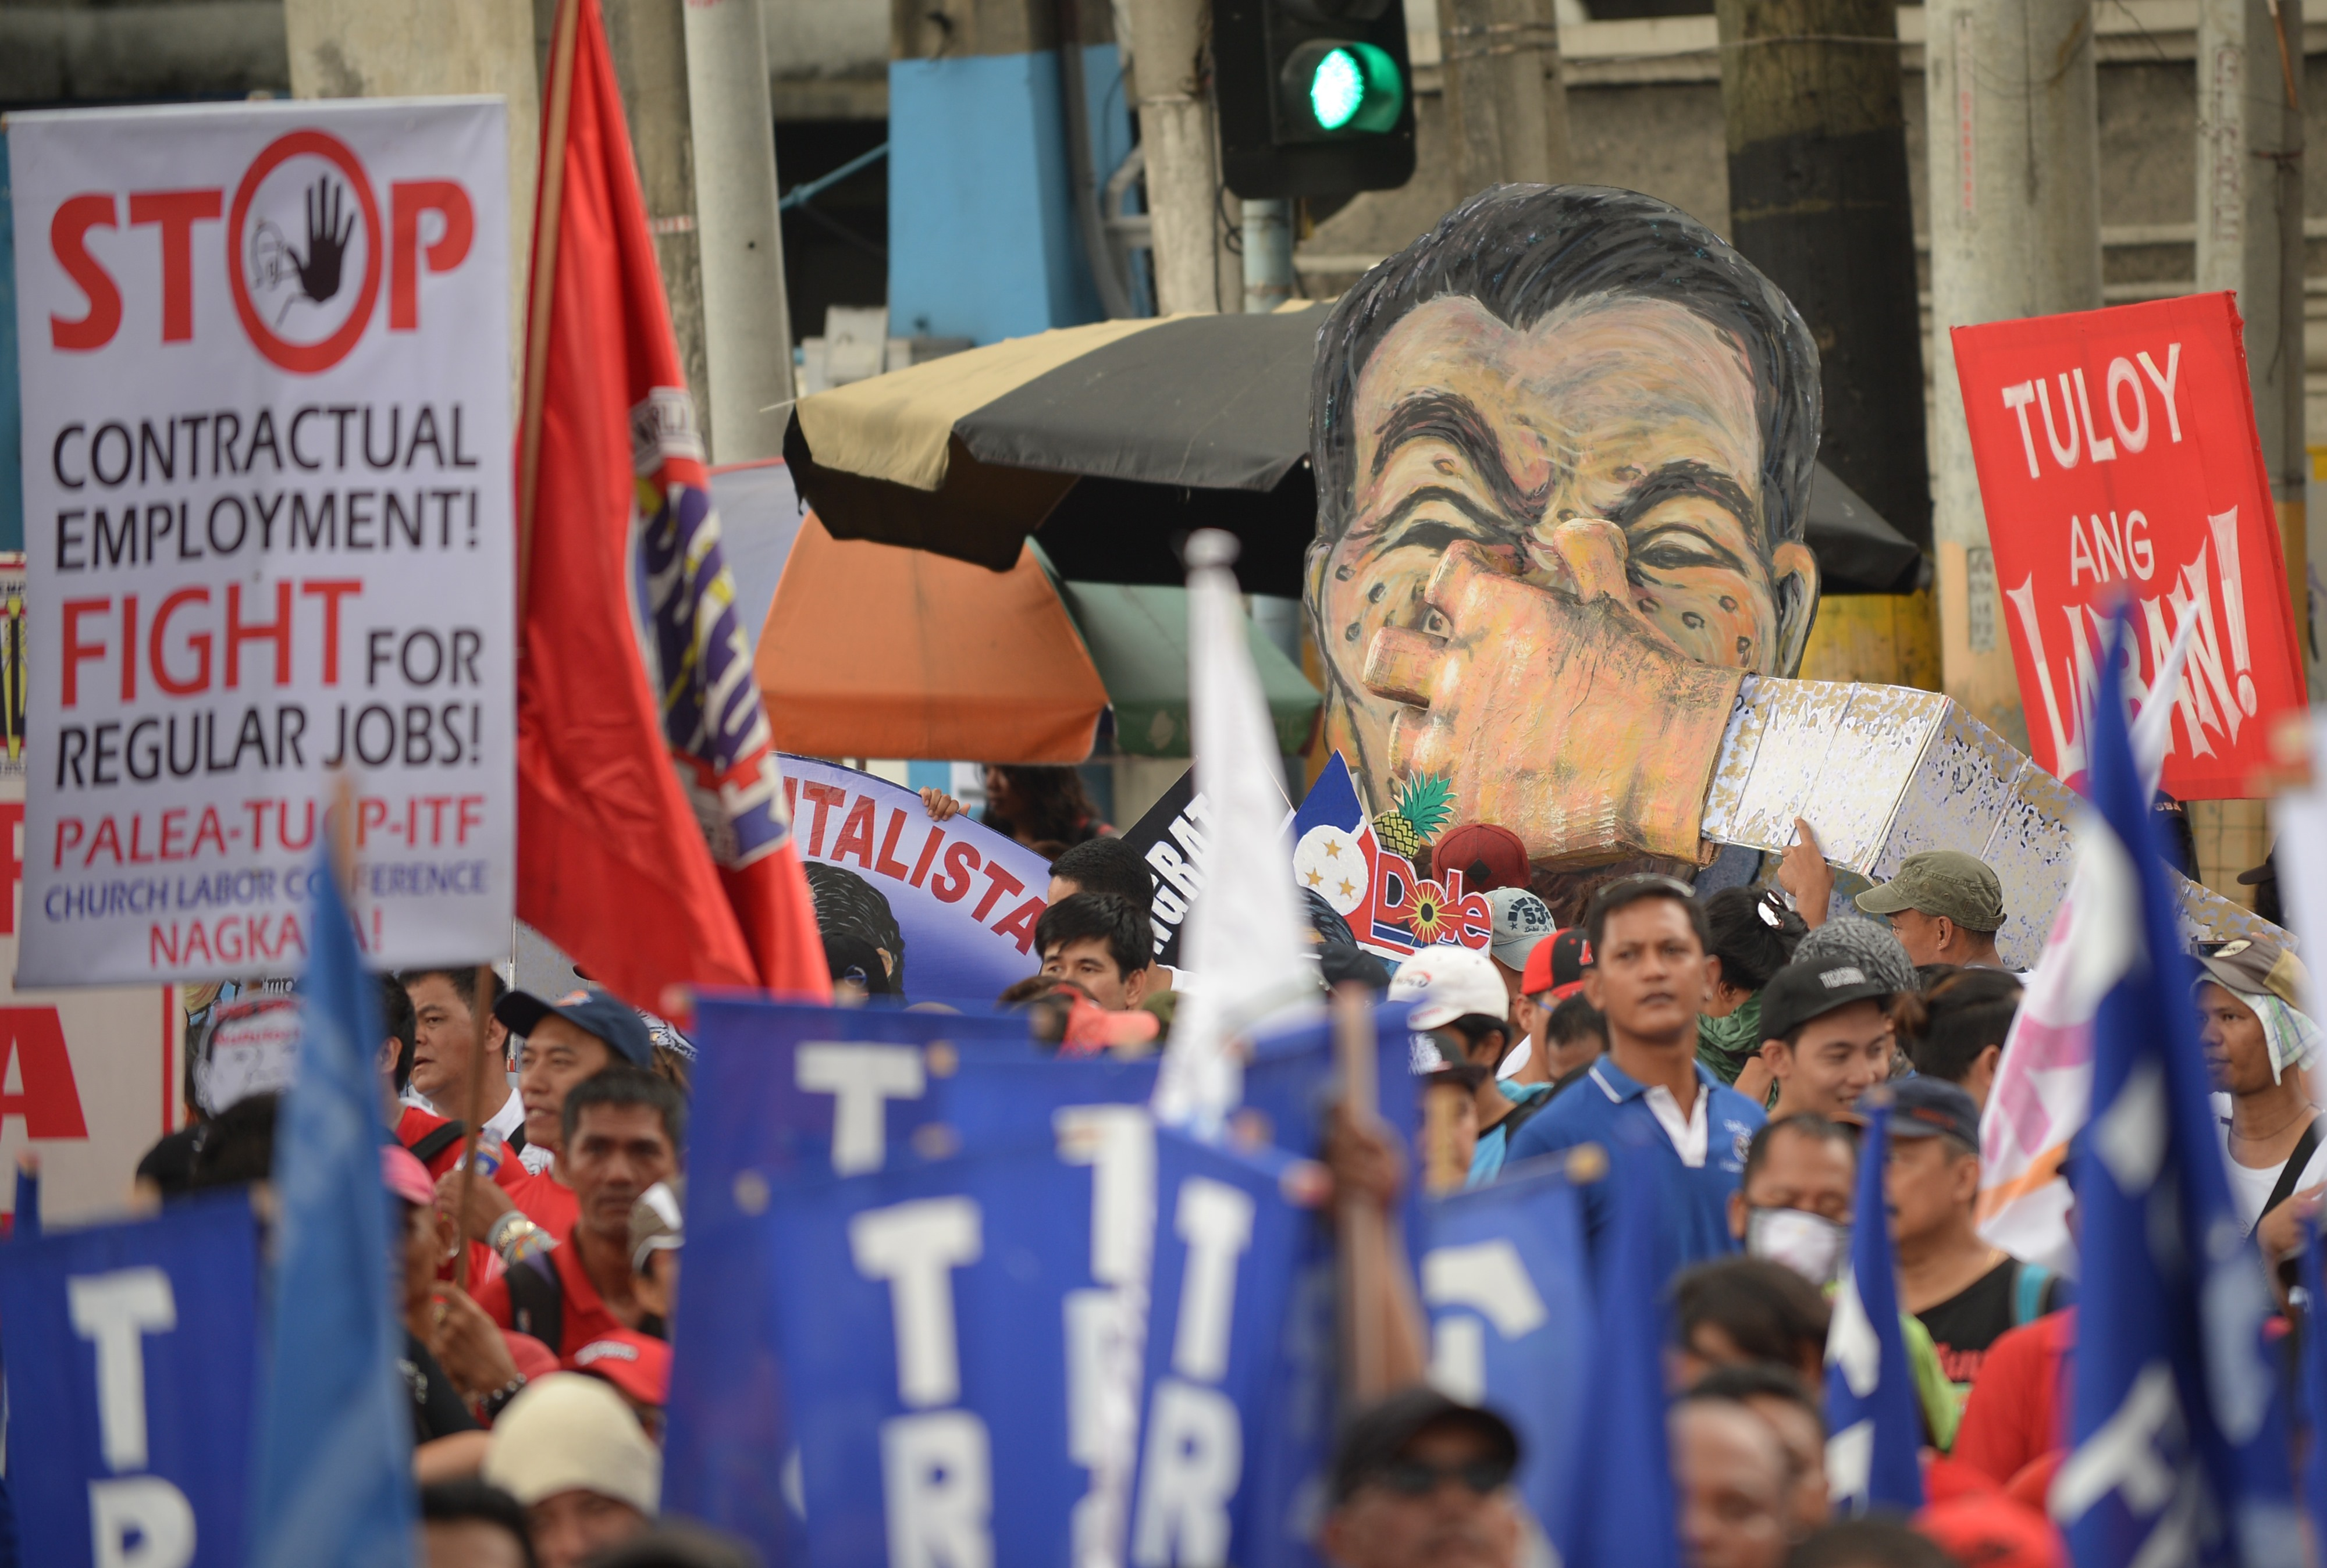 Laborers and activists carry an effigy of President Rodrigo Duterte as they march towards Malacanang presidential palace during the May Day rally in Manila, Philippines on May 1, 2018.